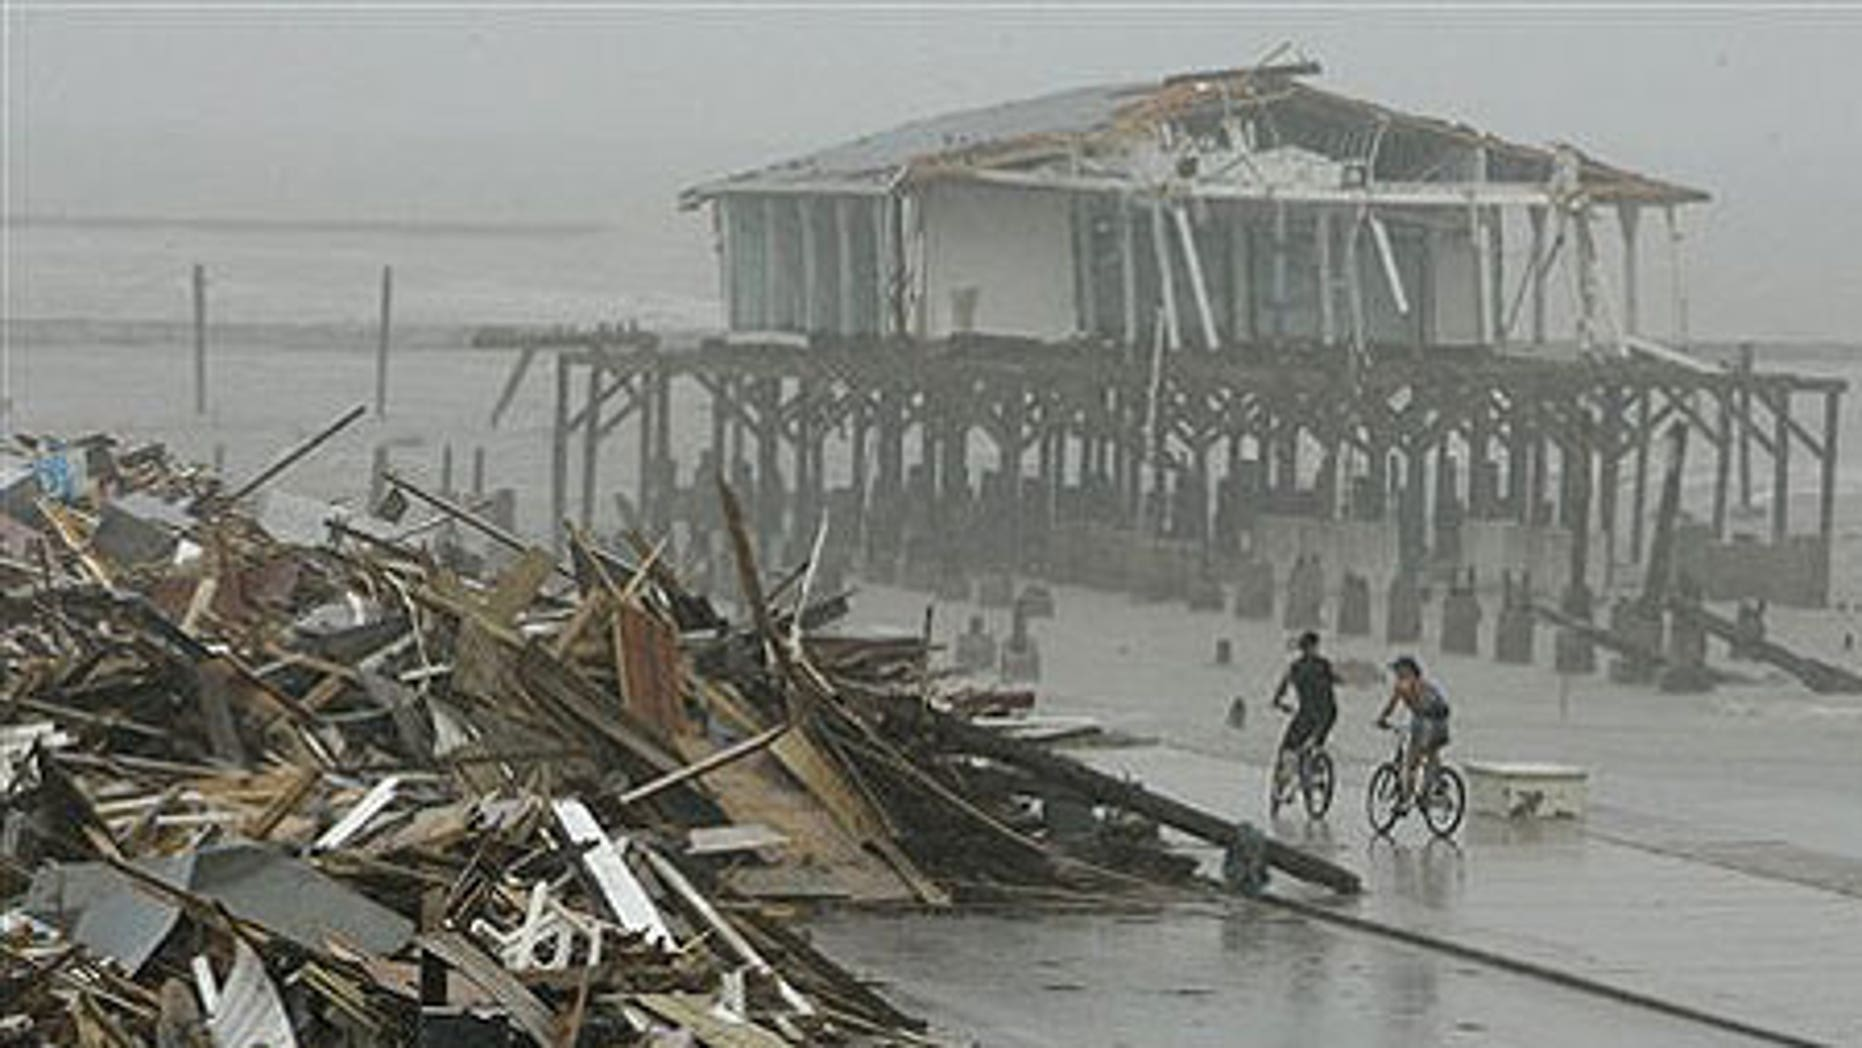 Sept. 14: Cyclists ride past debris piled up on the seawall road after Hurricane Ike hit the Texas coast.